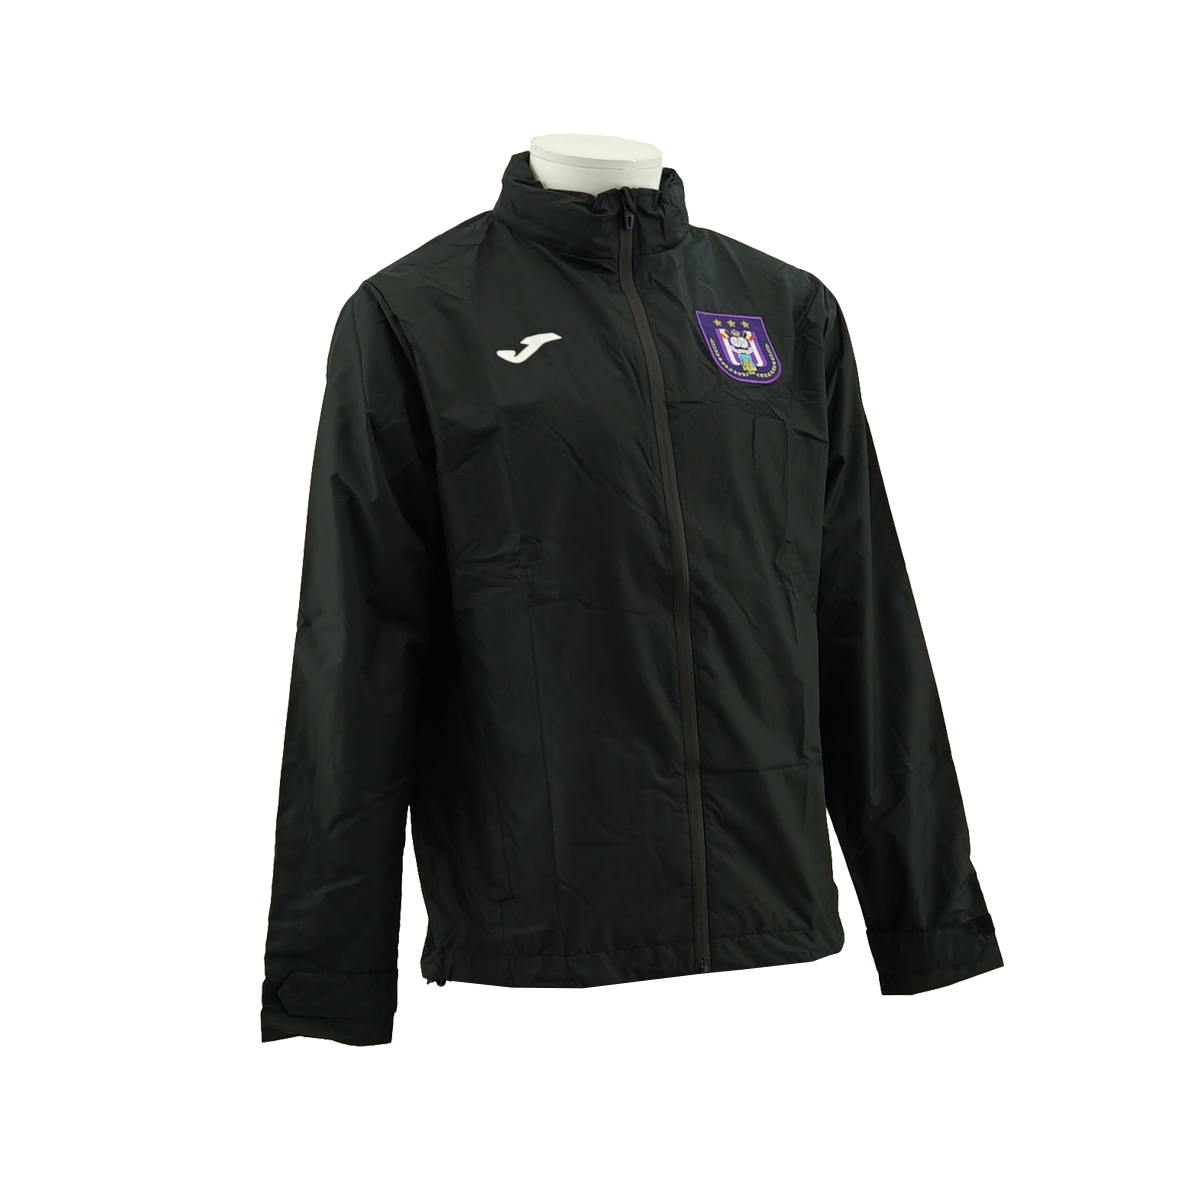 RSCA Rainjacket Training 2020/2021